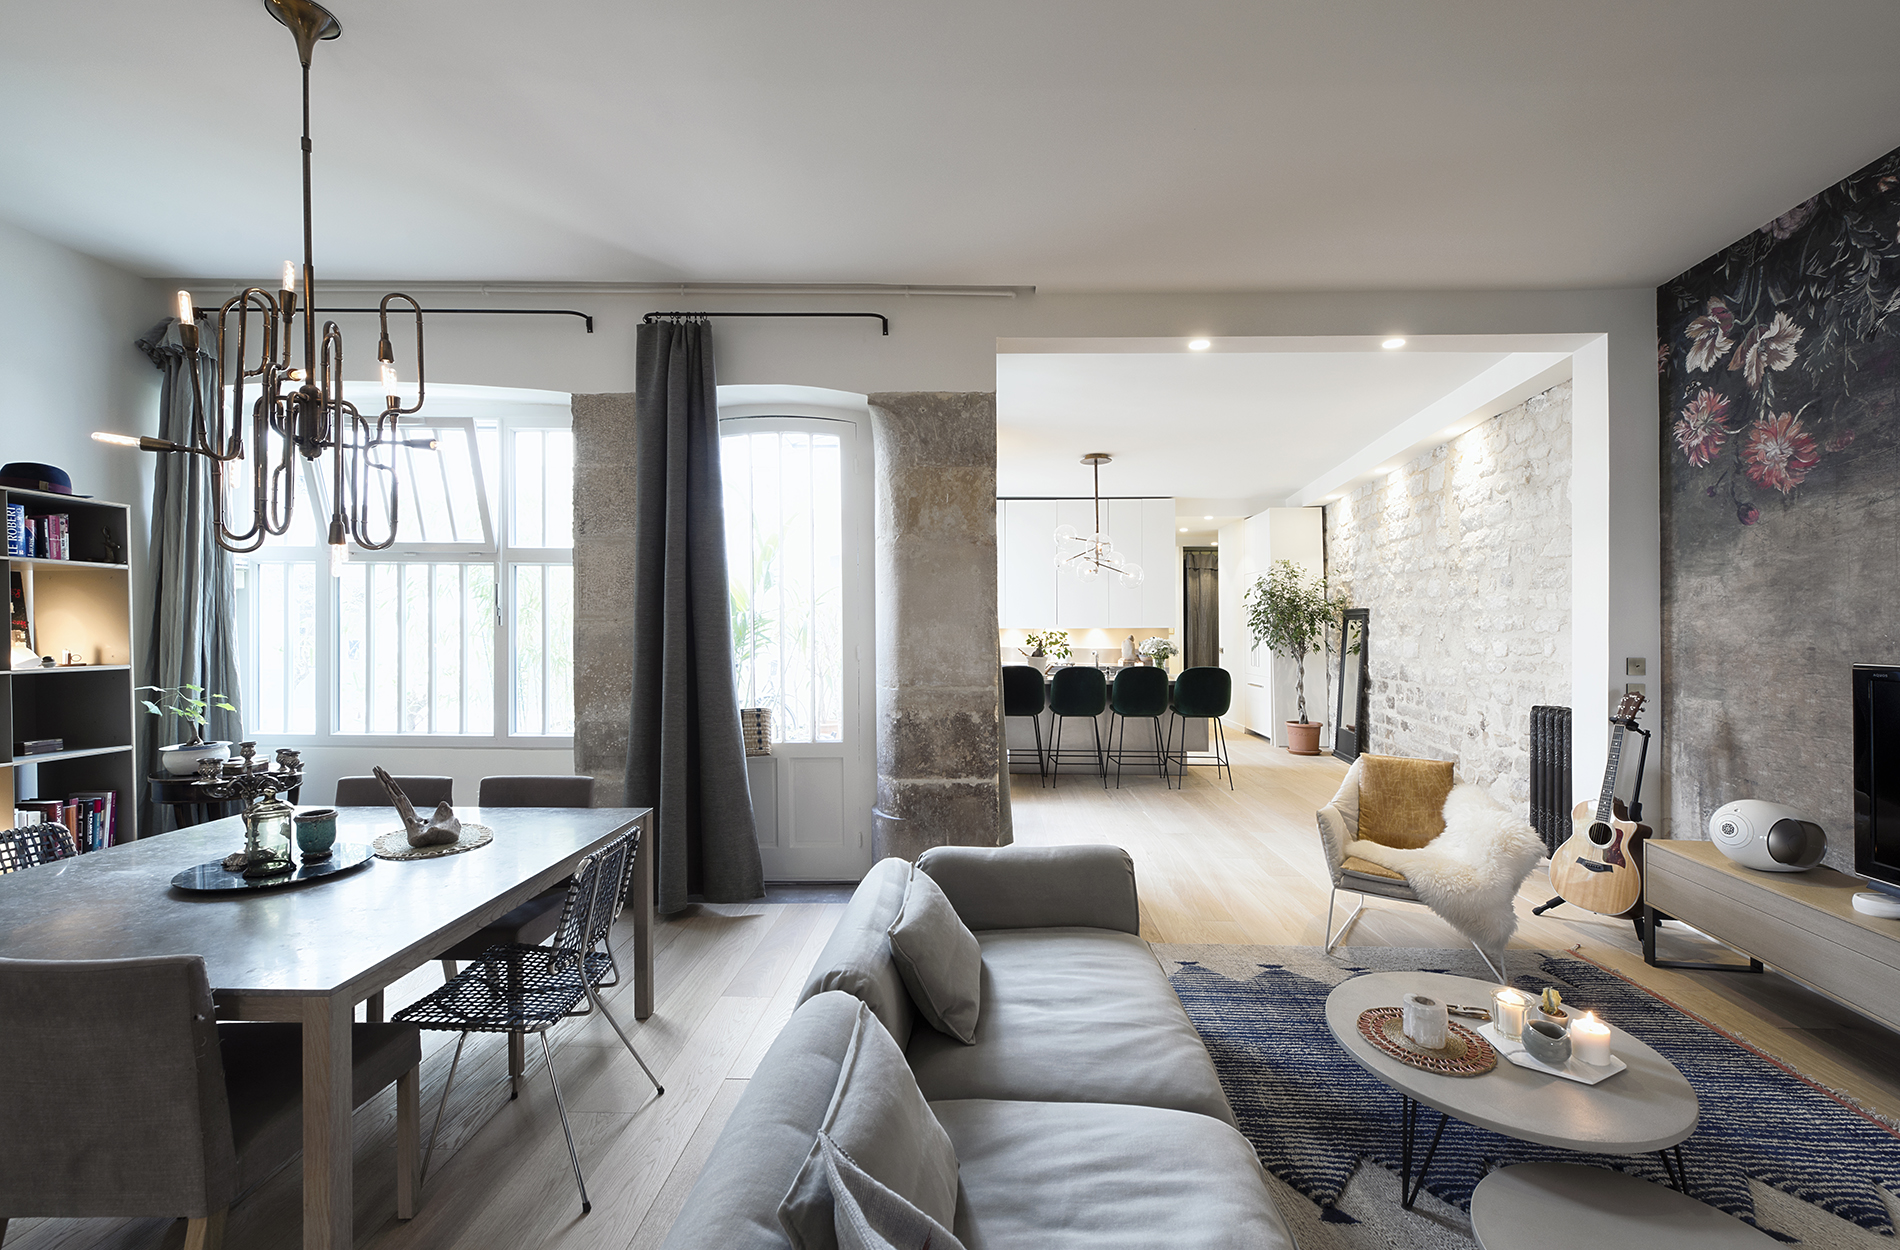 Mid-Century Lighting Brings Life to Apartment in Romantic Paris mid-century lighting Mid-Century Lighting Brings Life to Apartment in Romantic Paris Mid Century Lighting Brings Life to Apartment in Romantic Paris 2